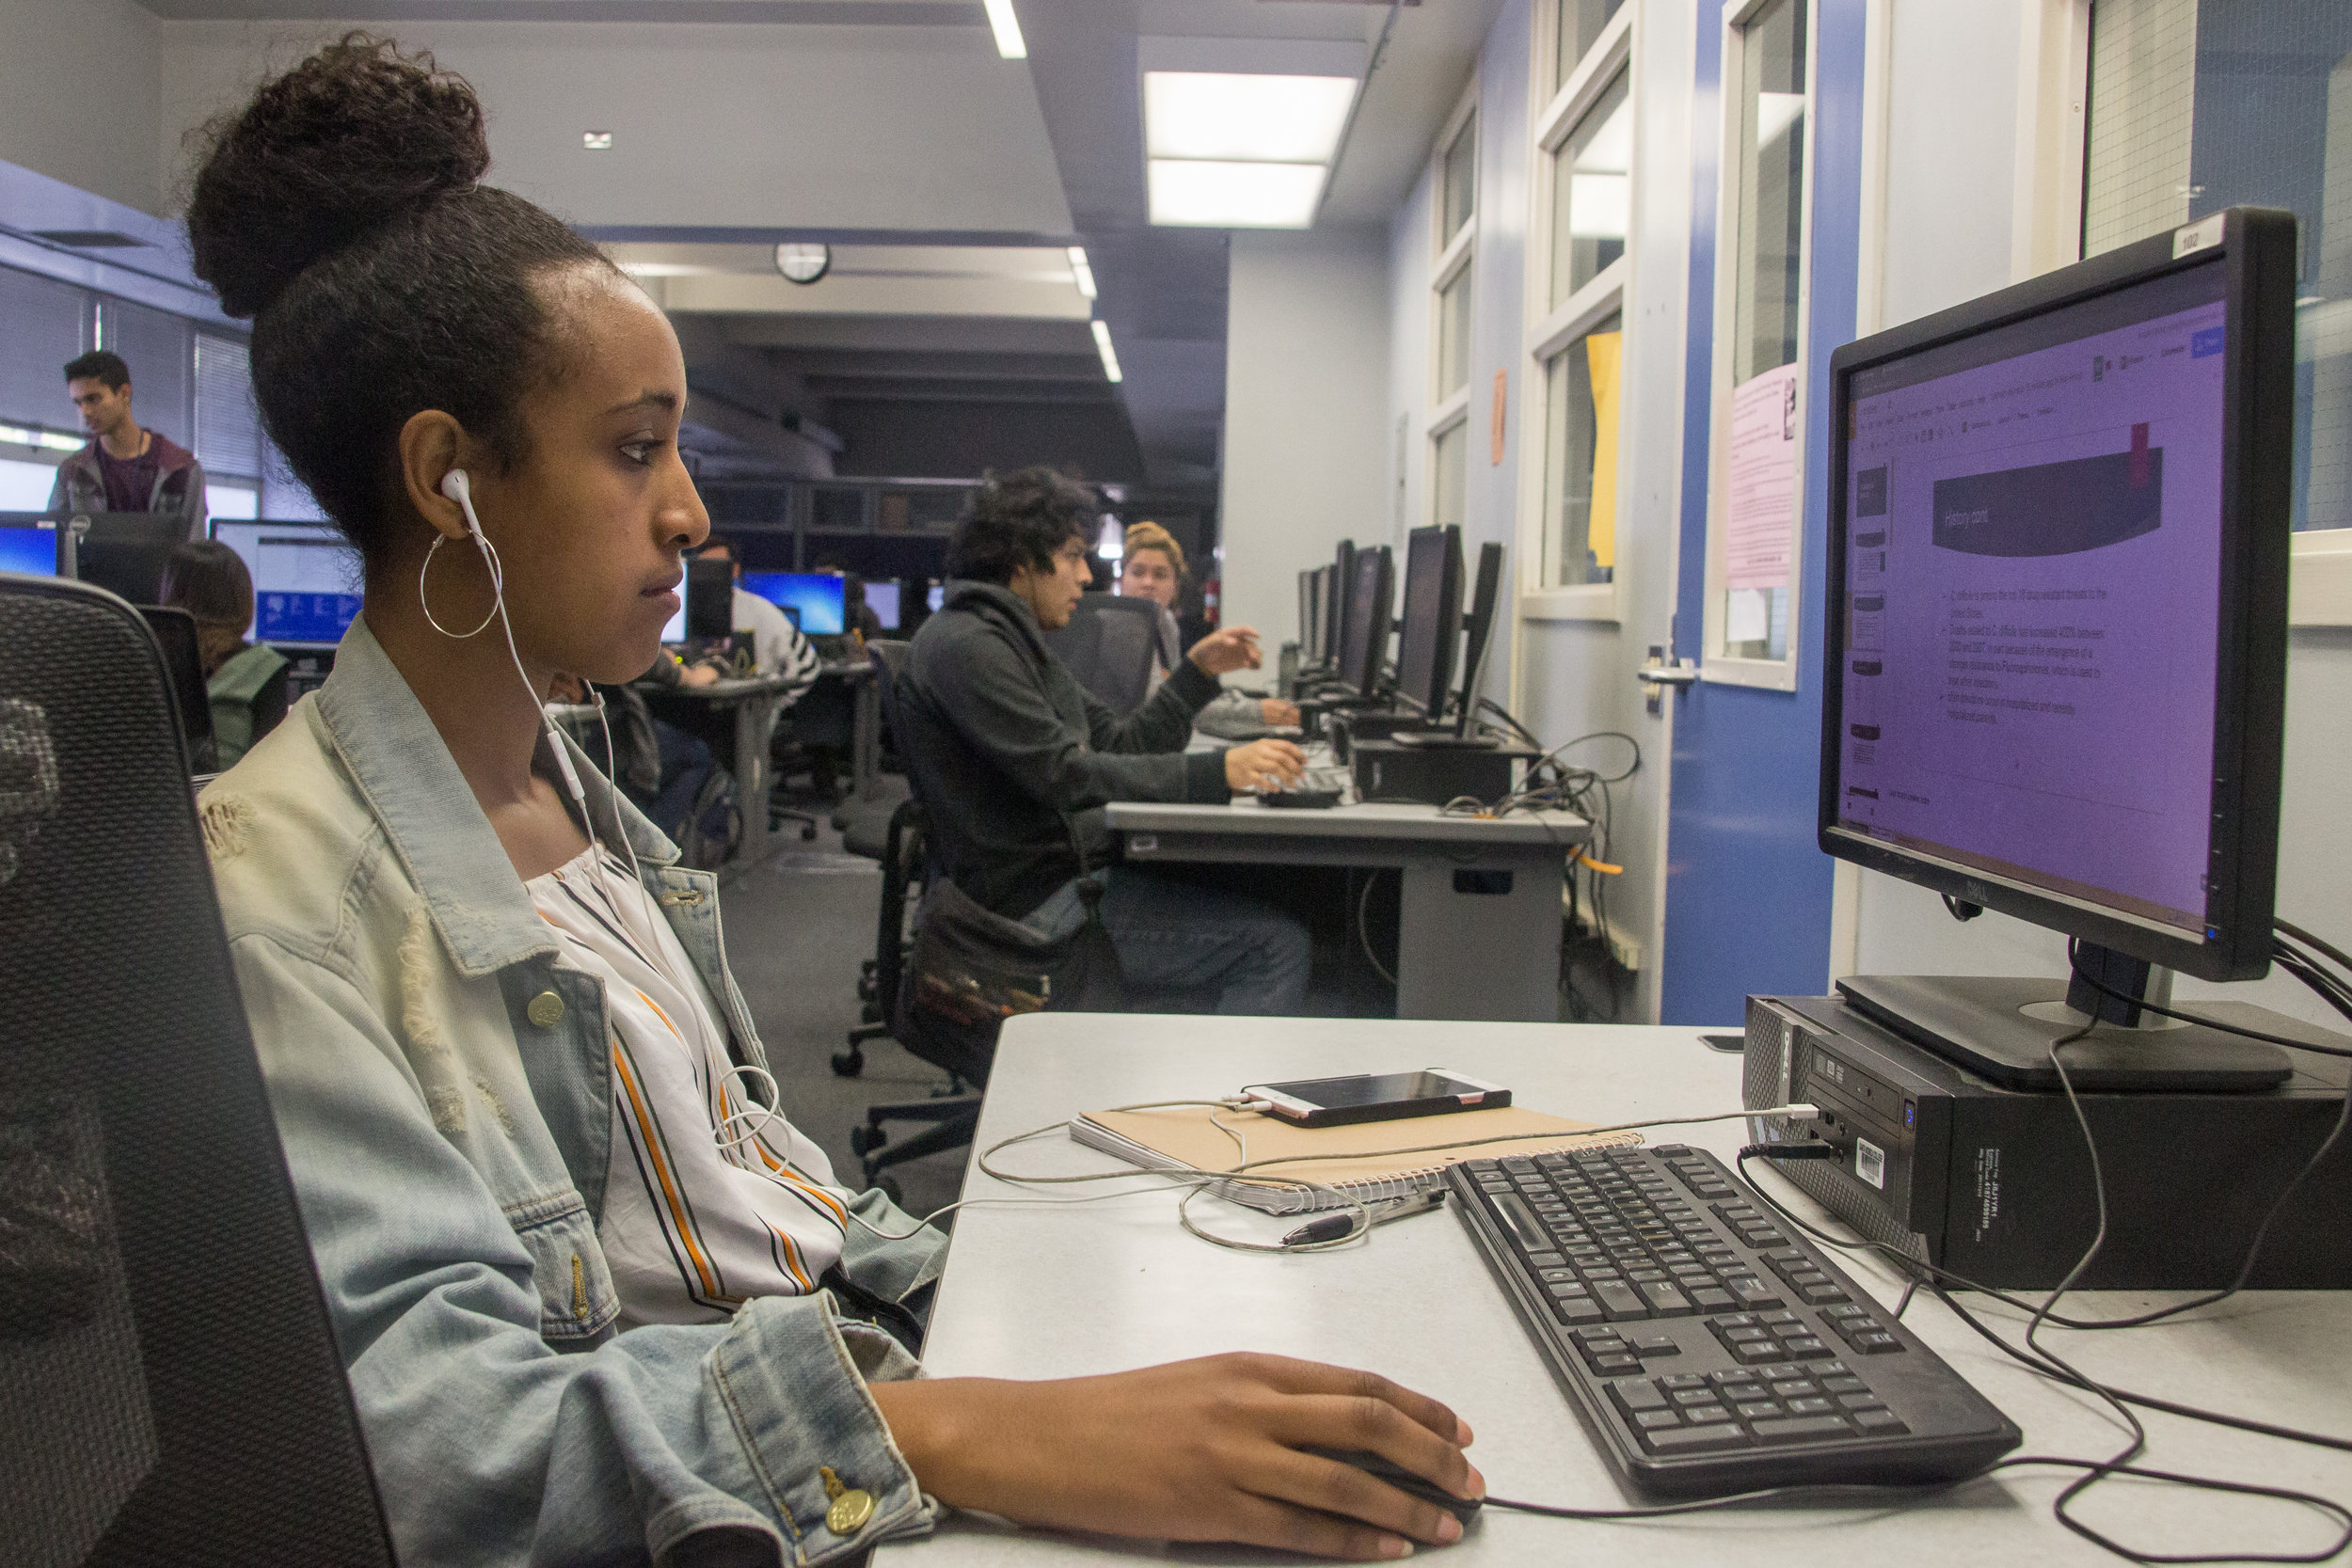 On Monday Nov. 27, 2017, Hanna Aregay, an international Santa Monica College student , originally from Ethiopia, studying to be a registered nurse works on her homework at the Associated Students Computer lab, located in the SMC Cayton Center, that has been a heated topic of debate recently as the Associated Students are planning to demolish a portion of it in order to begin costruction on the Social Justice/Gender Equity Center which was approved later that day by the A.S. during their weekly board meeting.